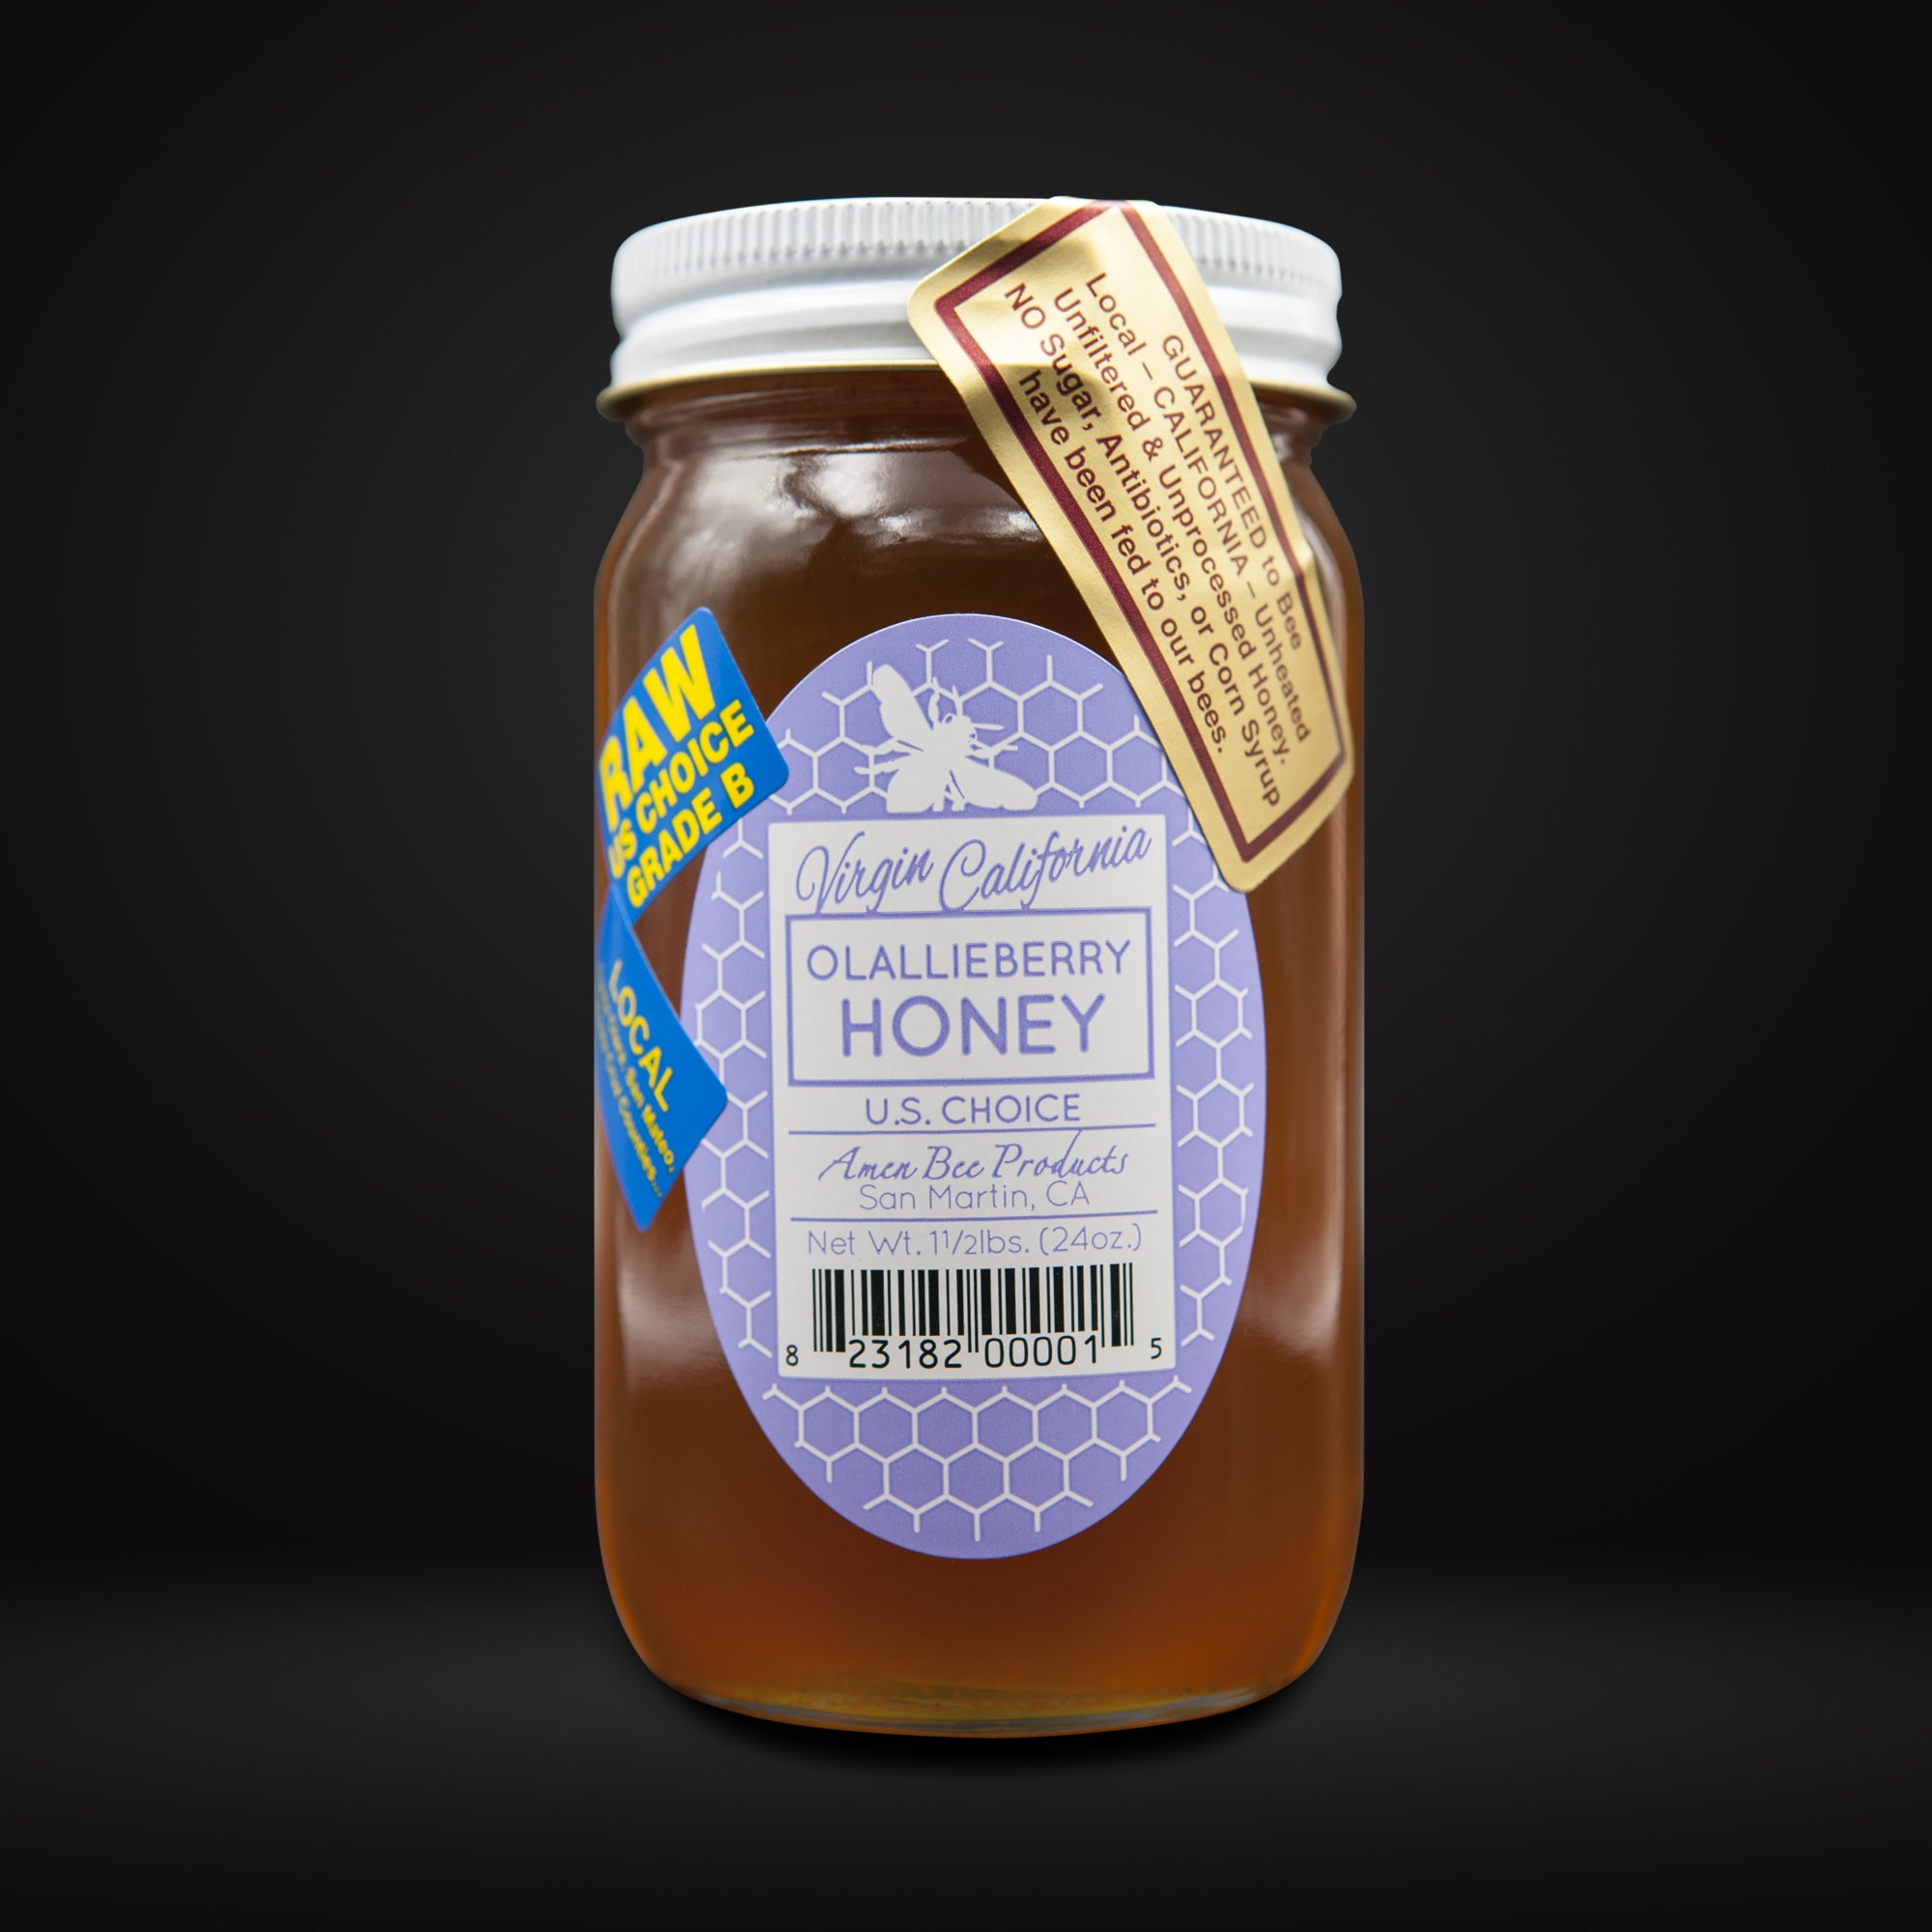 Olallieberry Honey